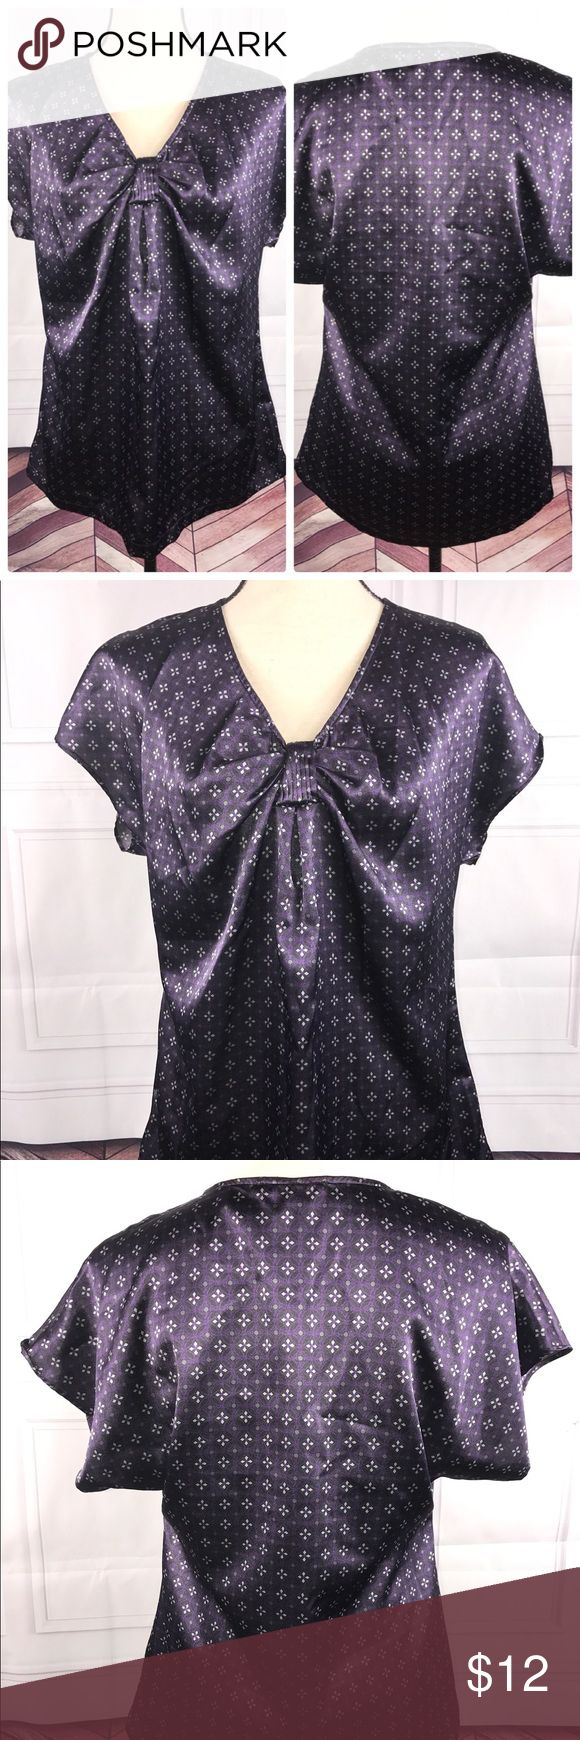 Apt. 9 Medium Purple Silver Blouse Apt. 9 Women's Purple Silver Blouse   •Medium   •Short Dolman Sleeve   Very good used condition   See pictures for:  Measurements  Flaws (if any)  Fabric content  Cleaning instructions  Additional details   Thank you for looking at my store! Apt.9 Tops Blouses